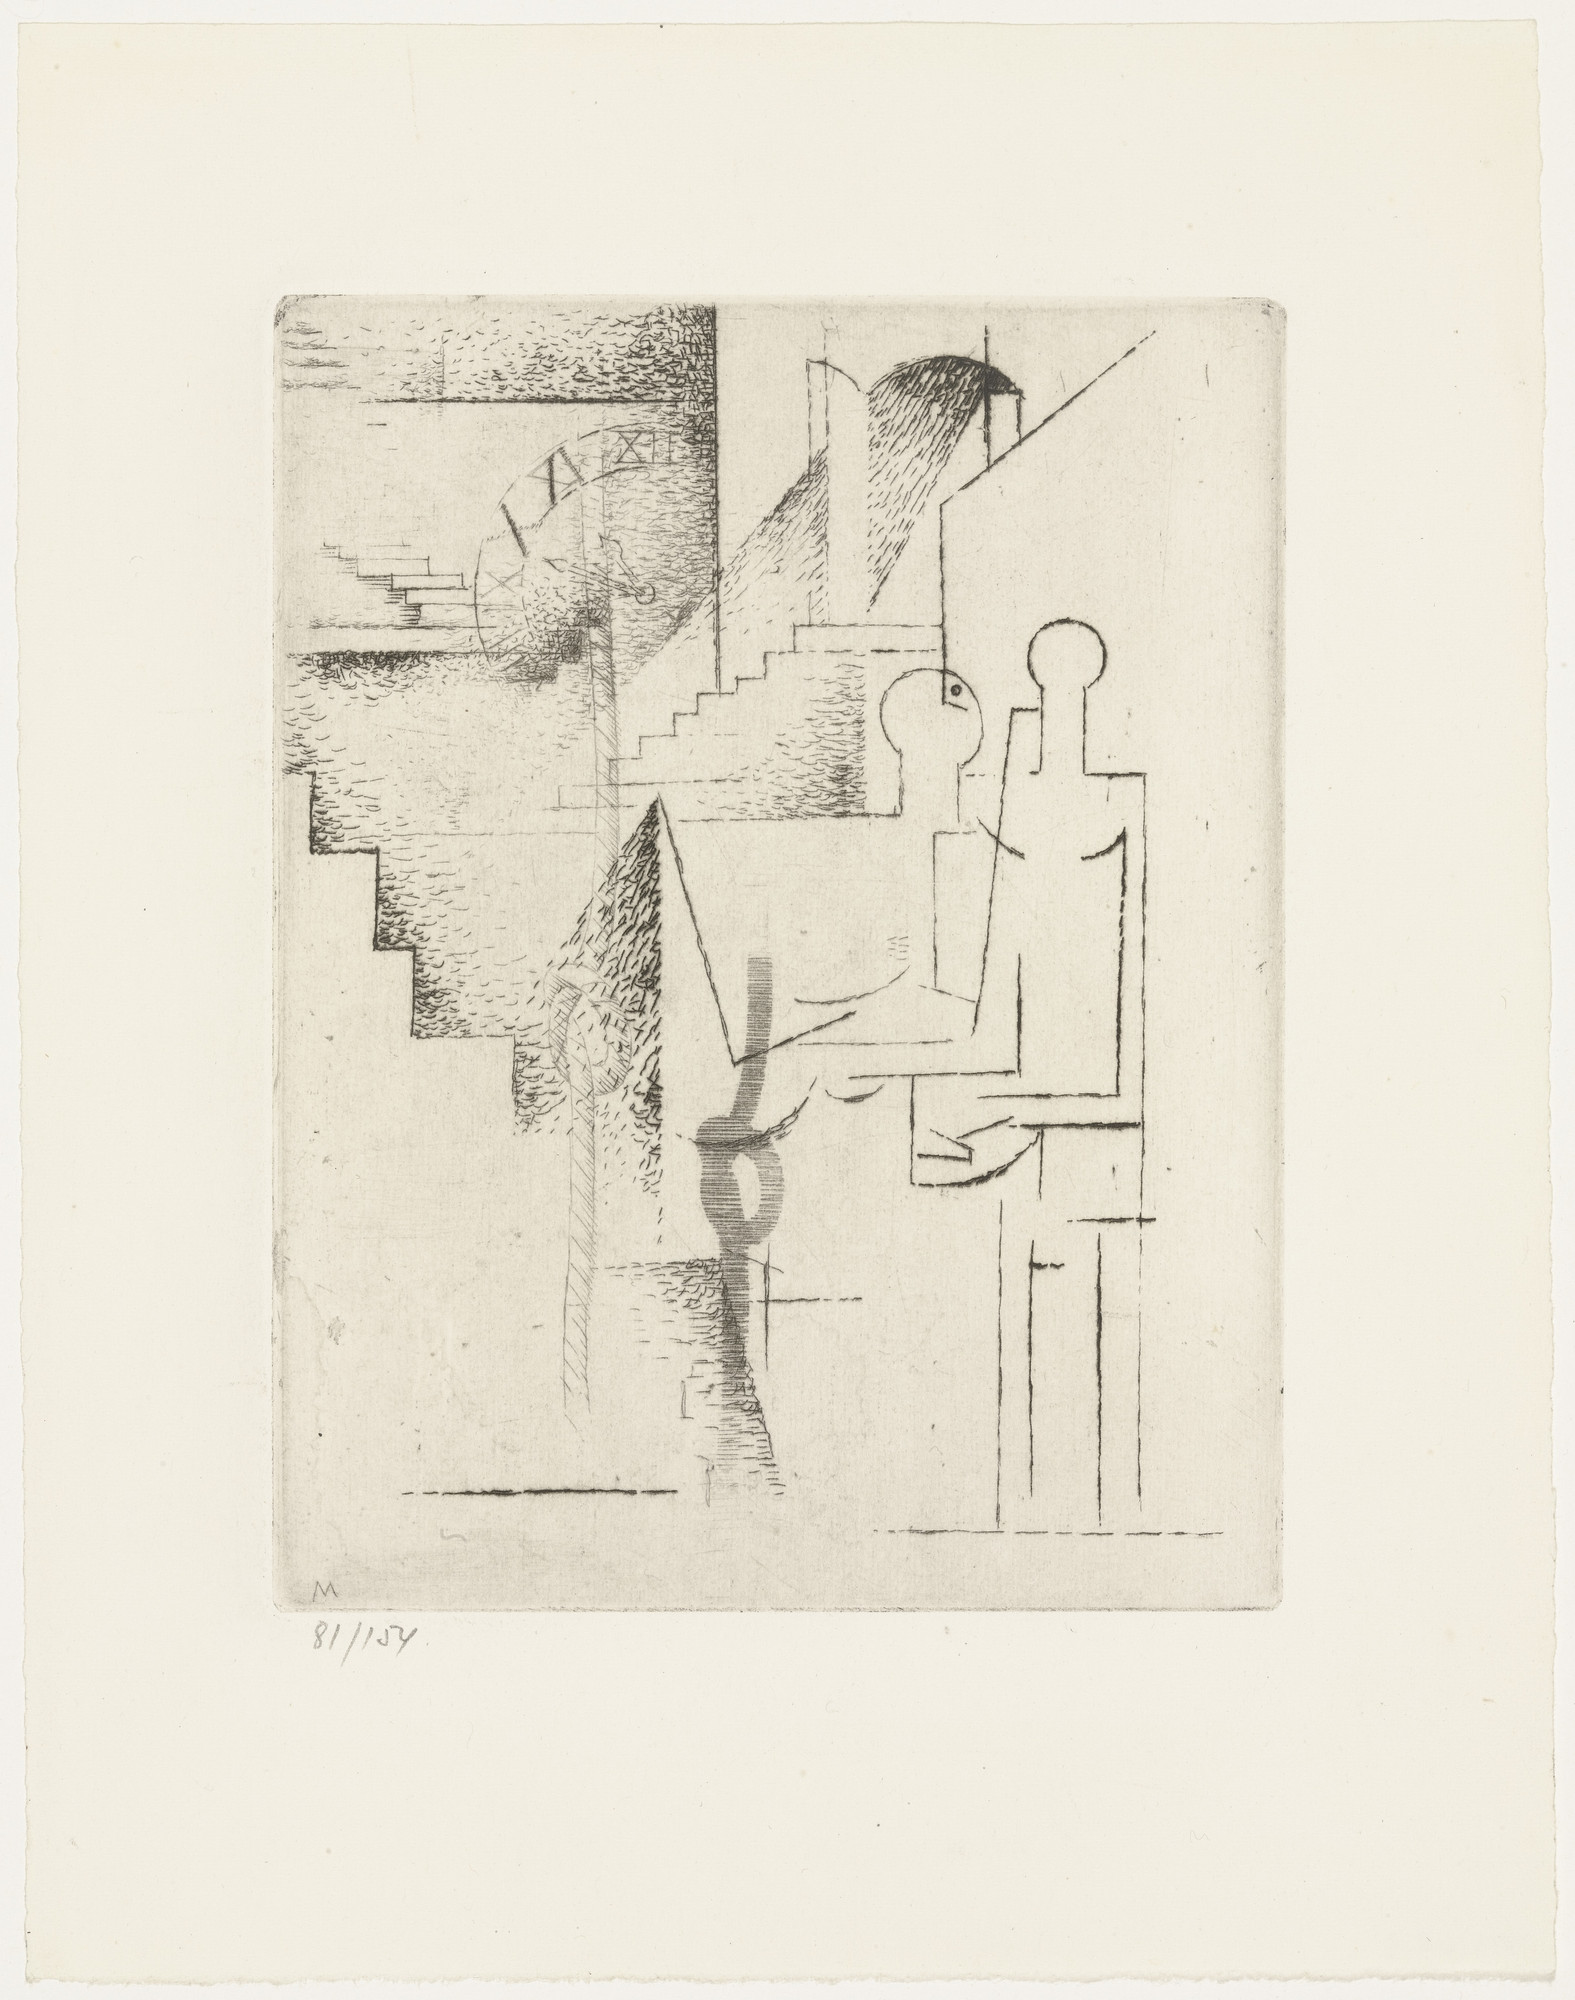 Louis Marcoussis. Insane Asylum (Asile des fous) from Ten Etchings for Aurélia (10 Eaux-fortes pour Aurélia) by Gérard de Nerval. 1931